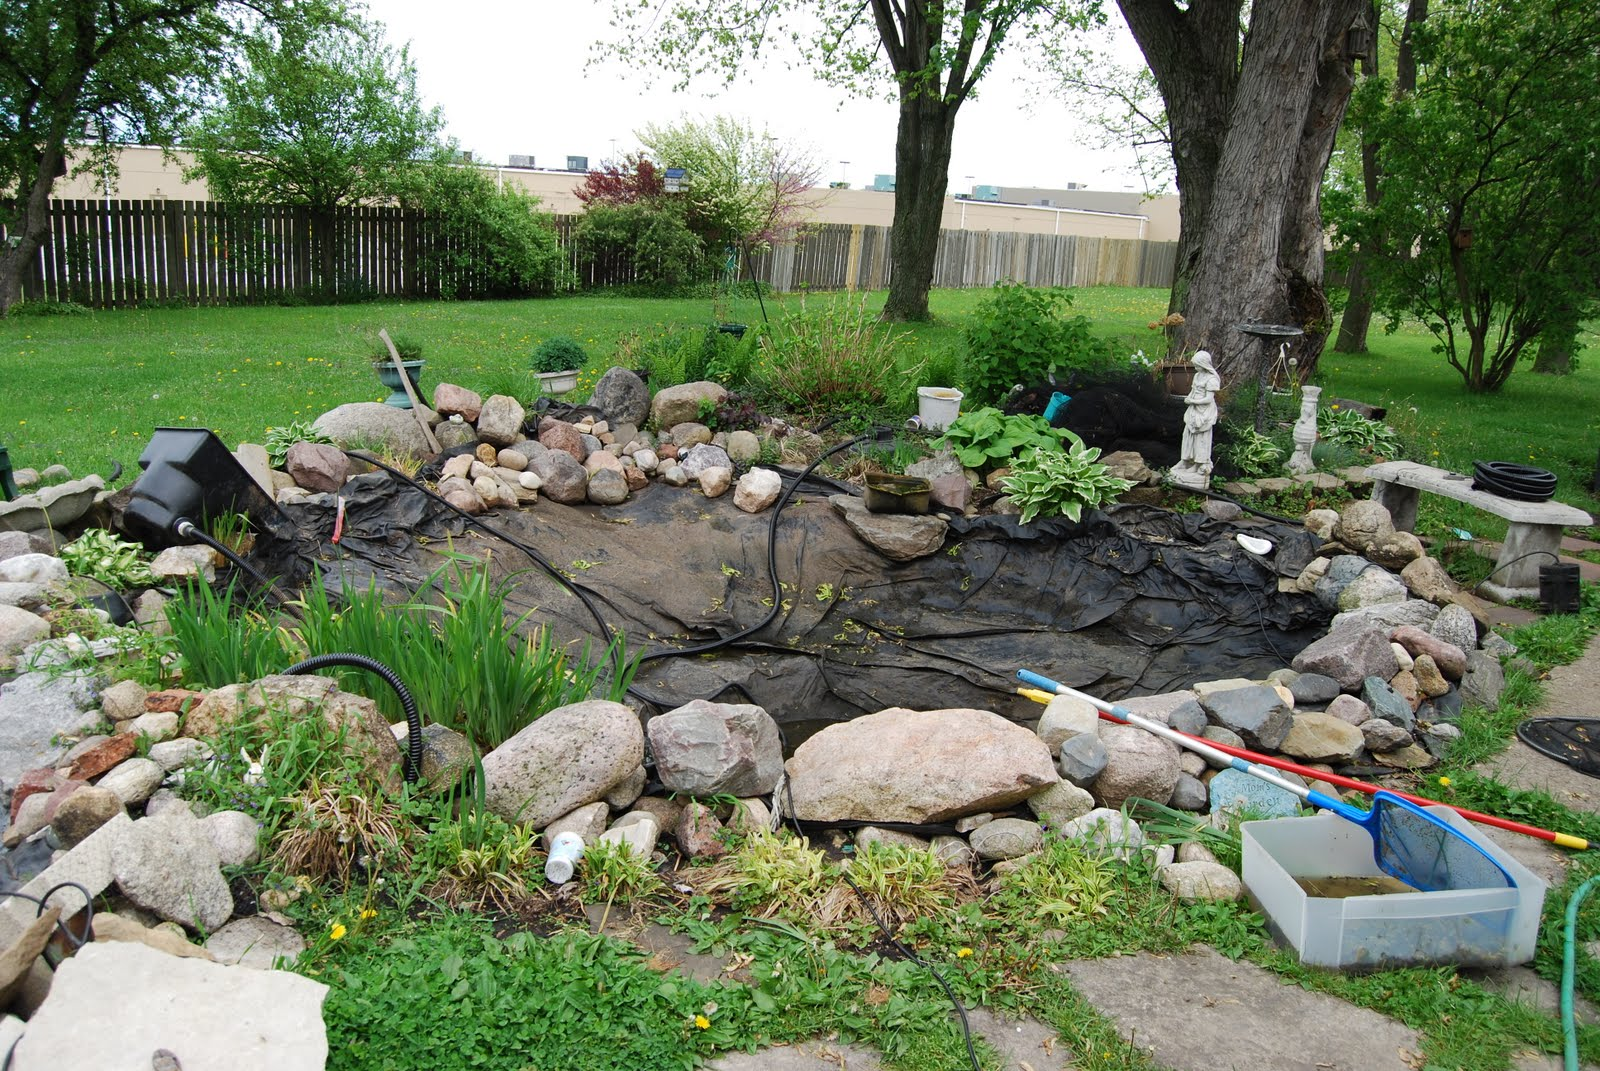 Musings of the sixties spring cleaning koi pond style for How to make koi pond water clear